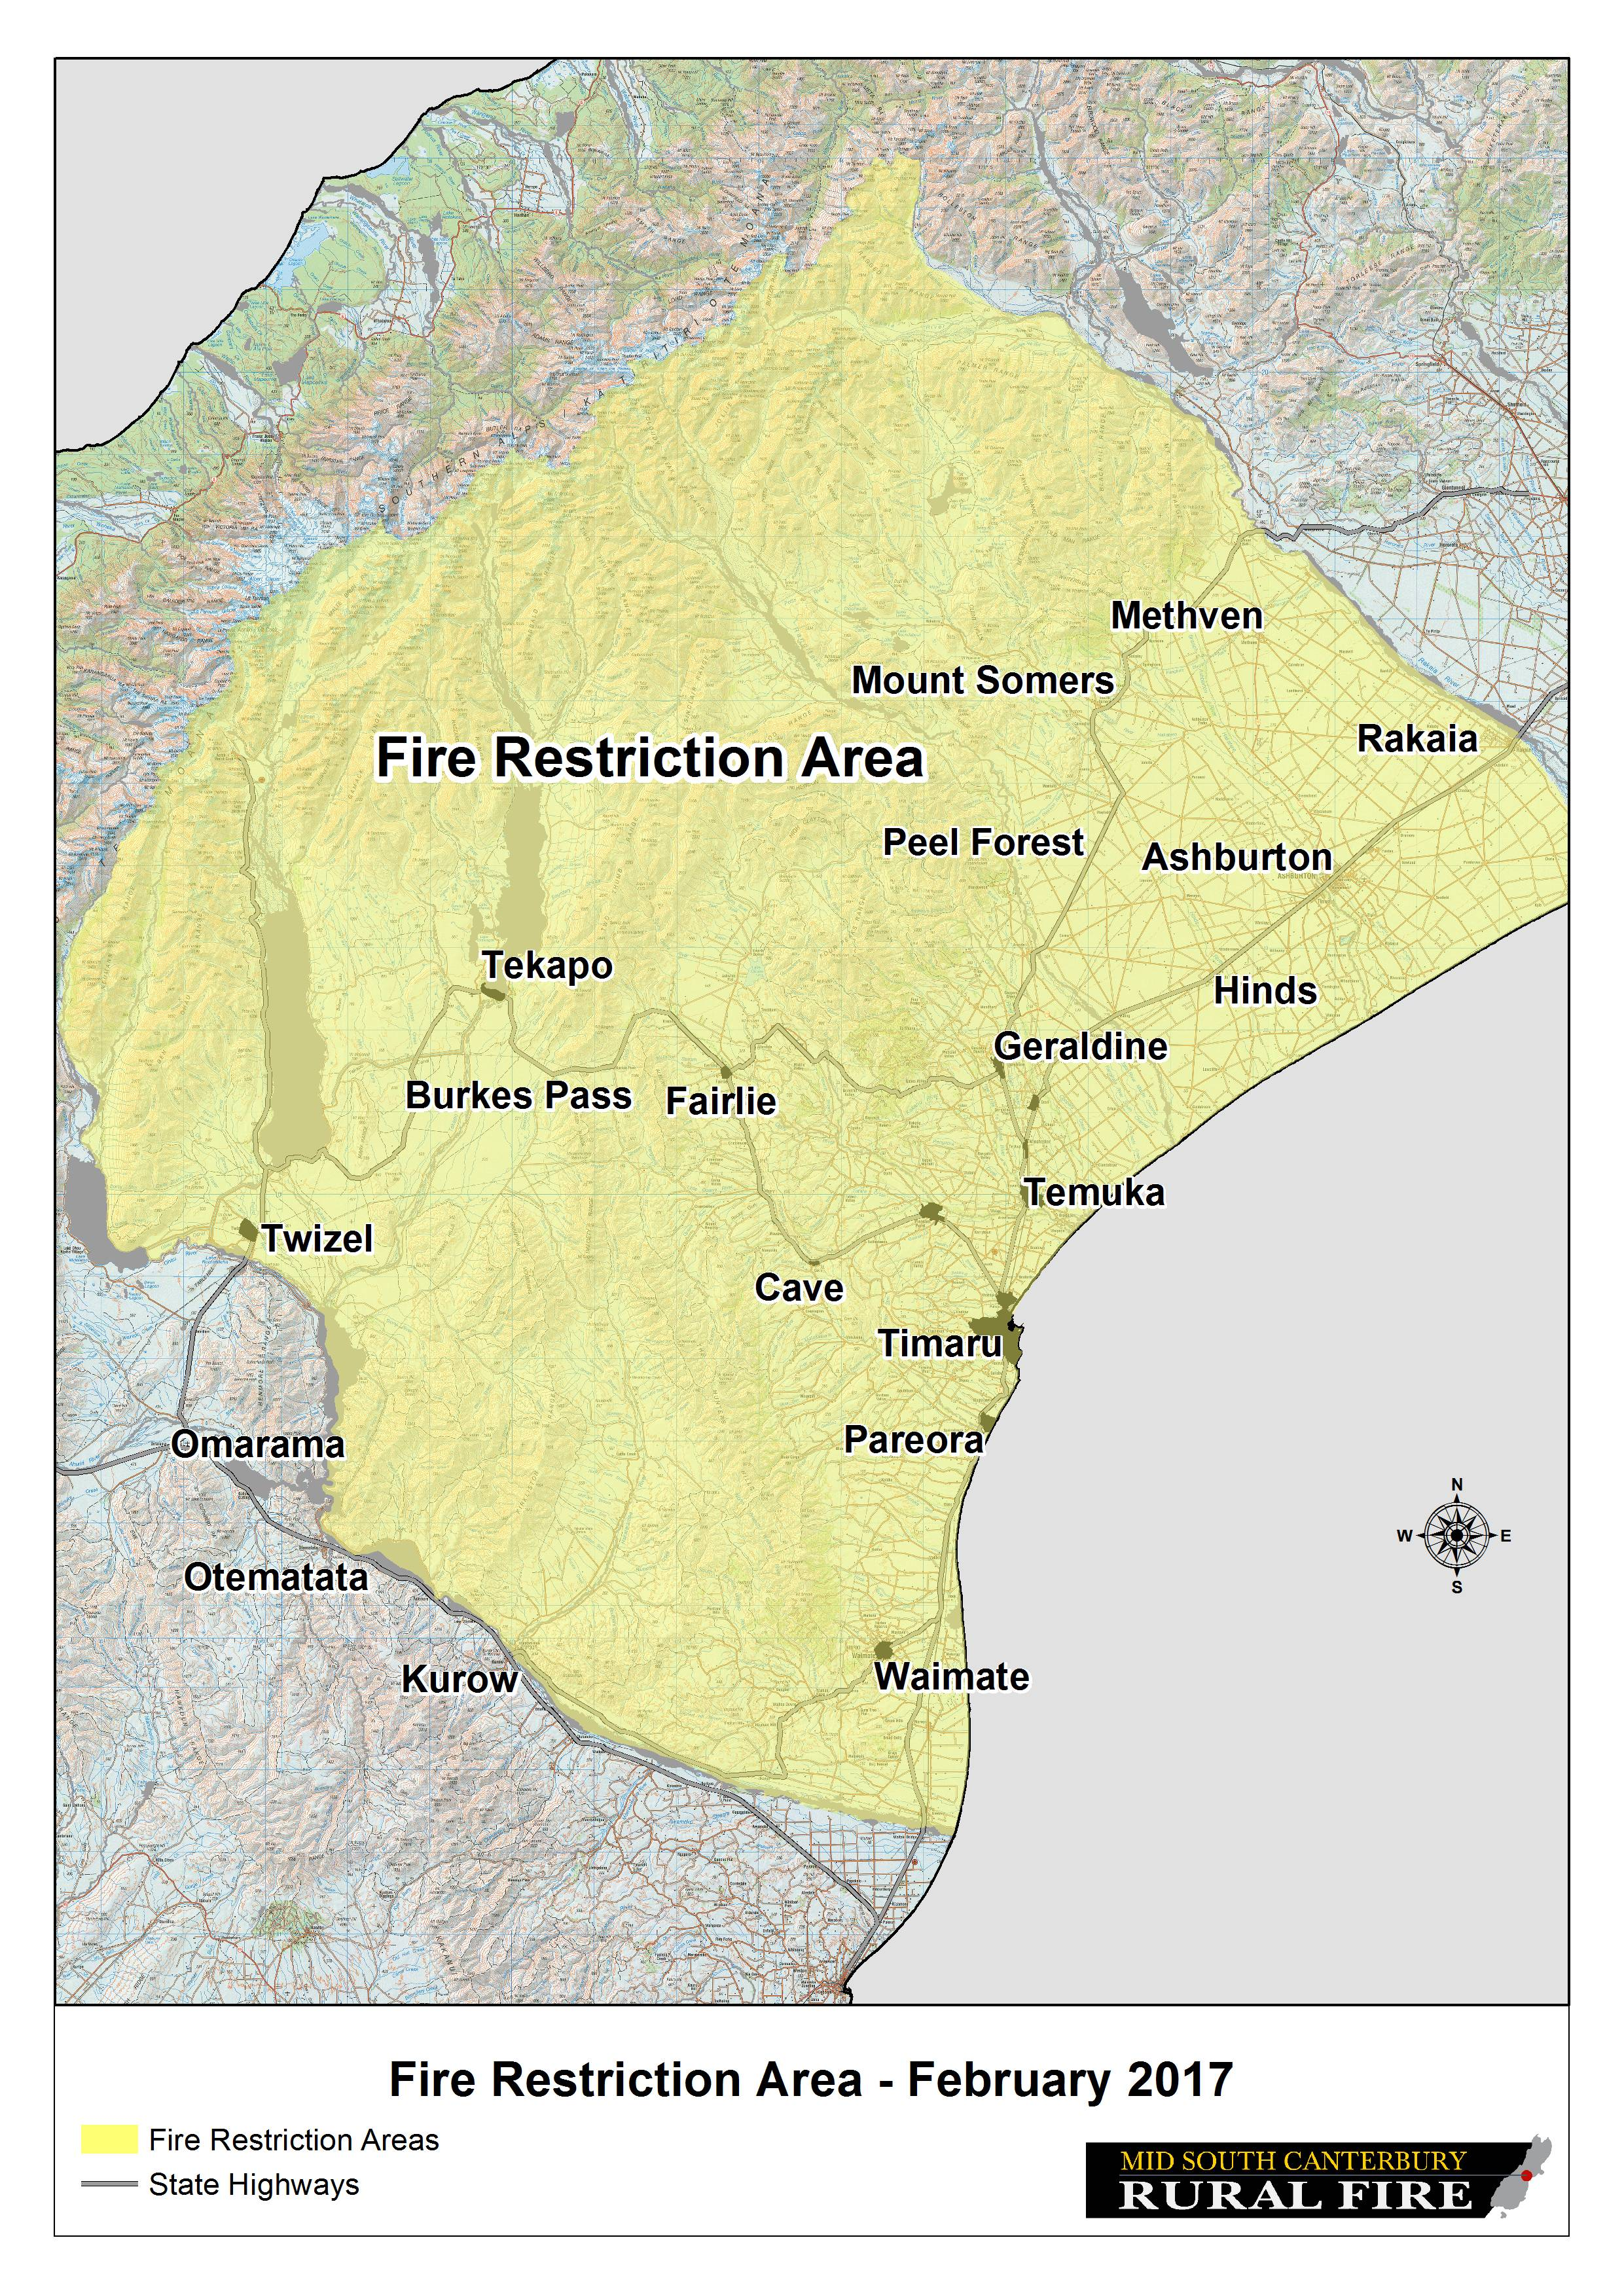 Fire Restriction Map 28 February 2017